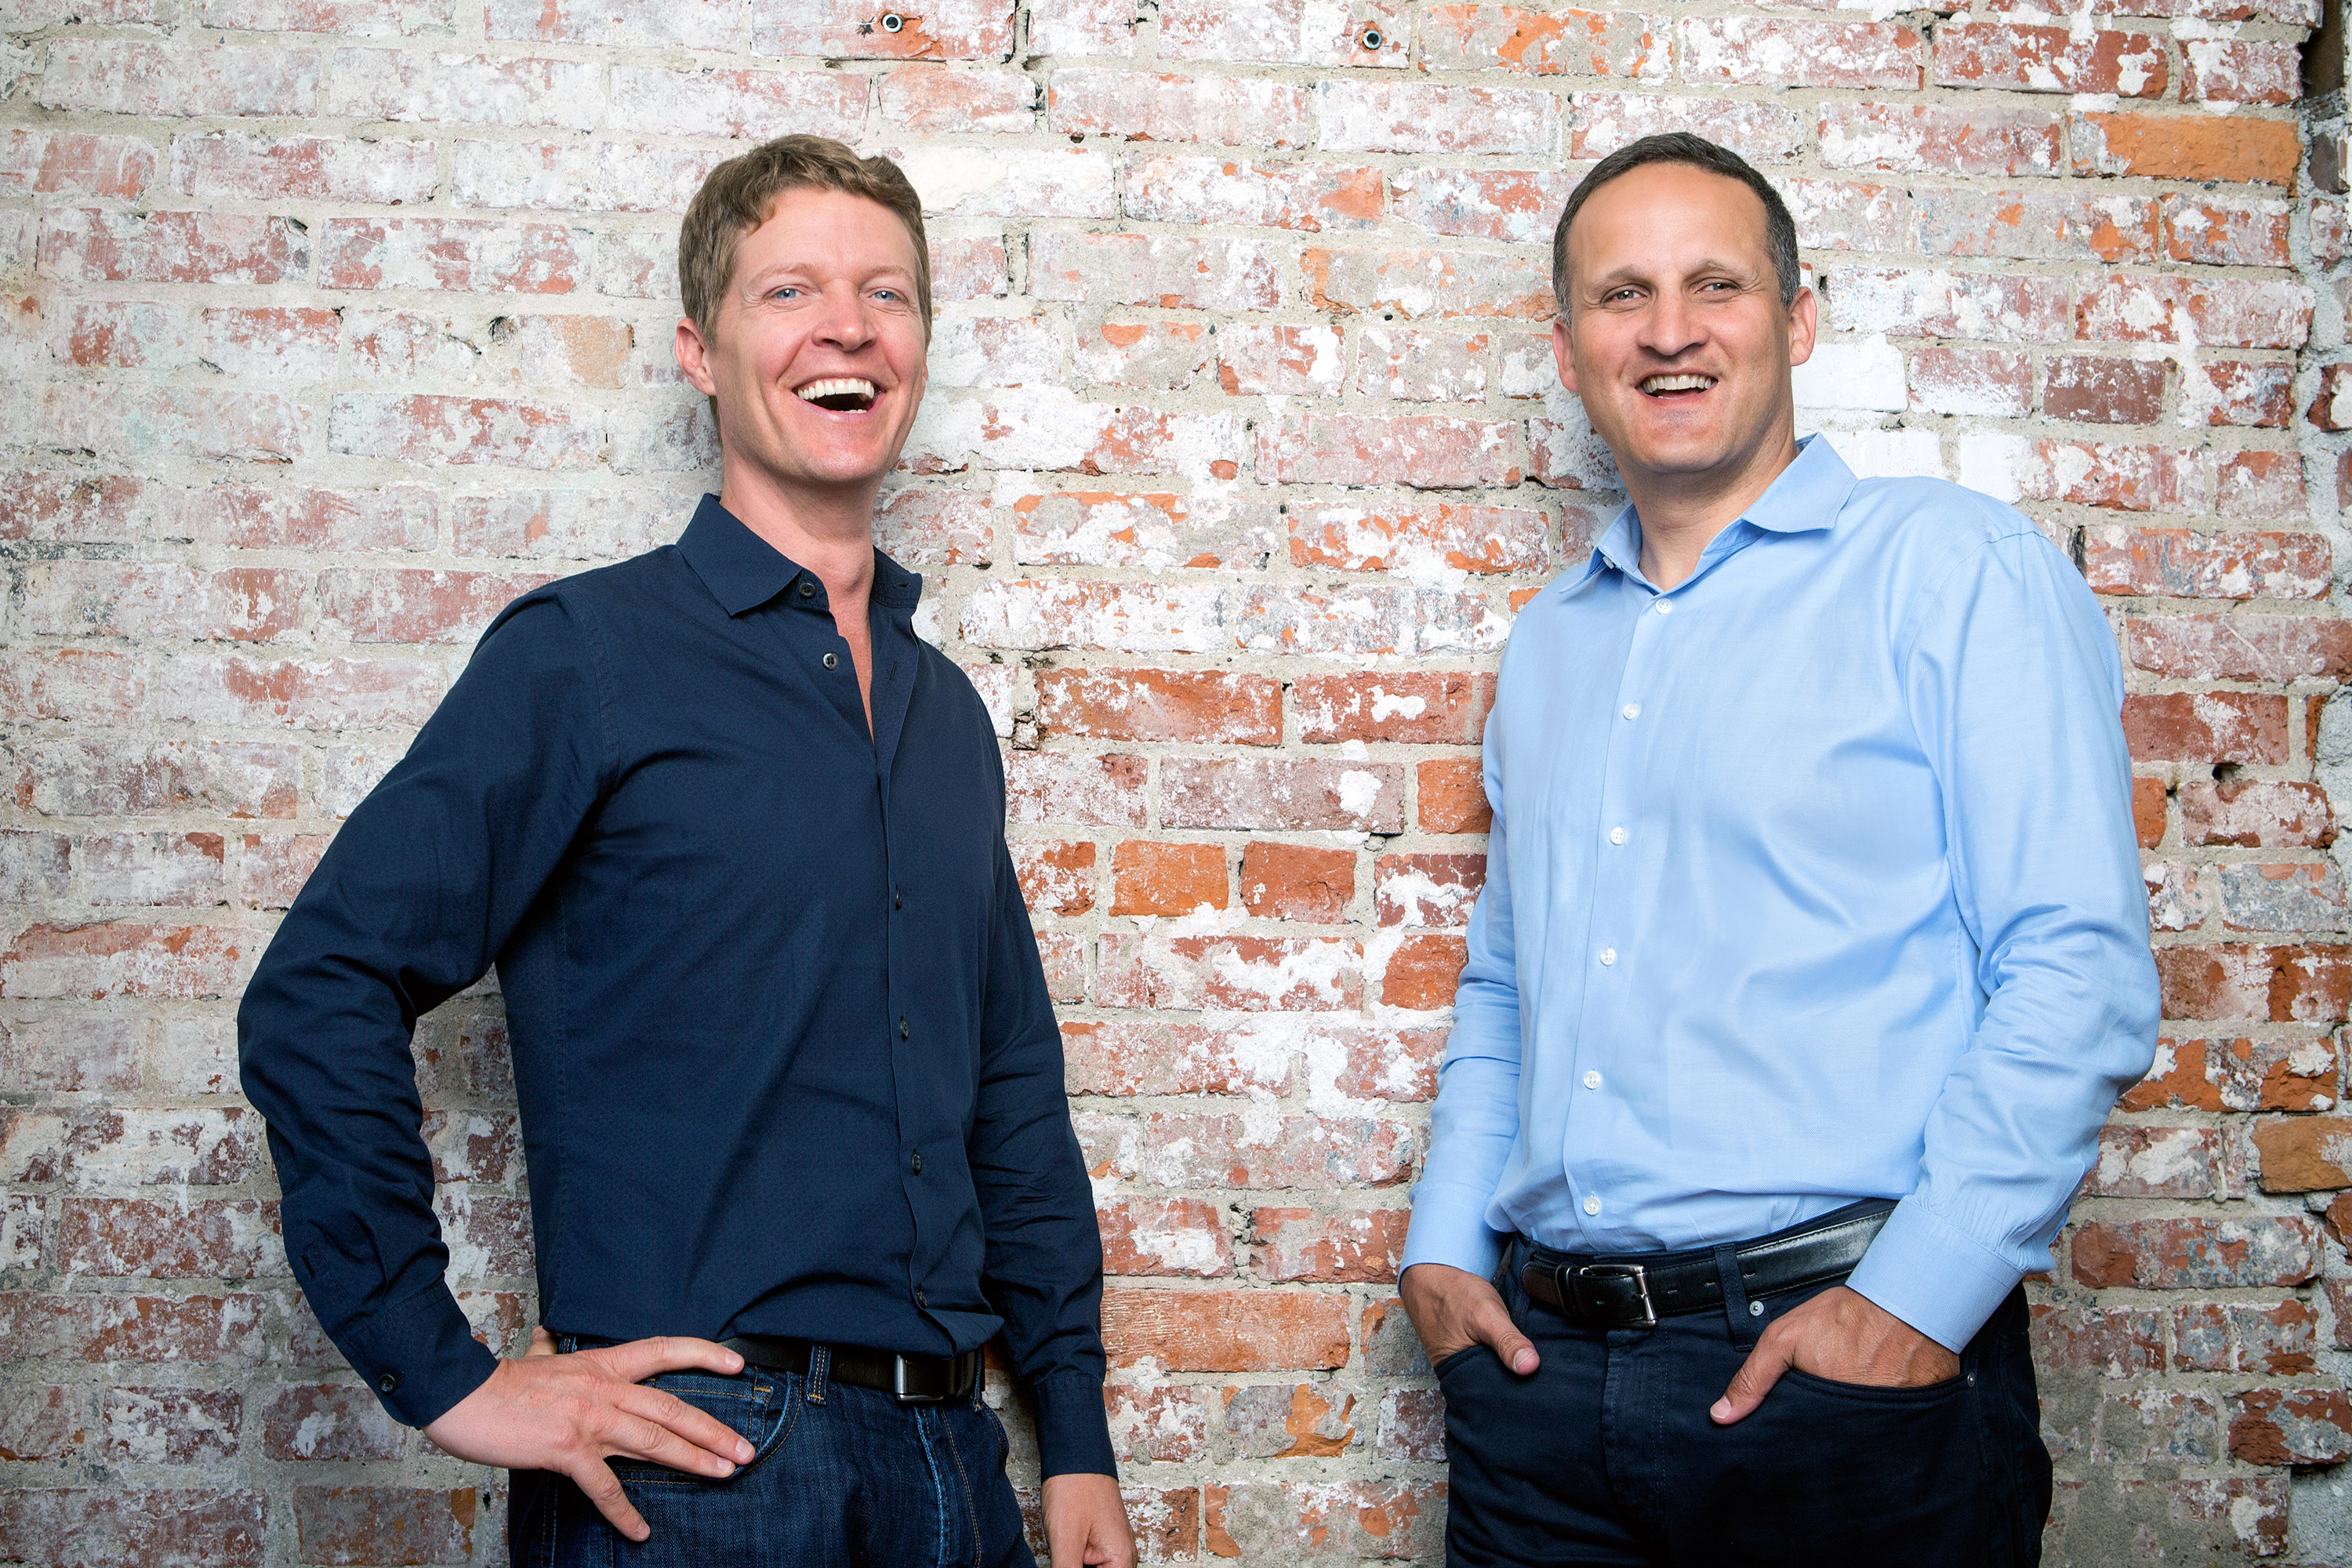 Tableau Software co-founder and chairman Christian Chabot (l.) and new CEO Adam Selipsky.